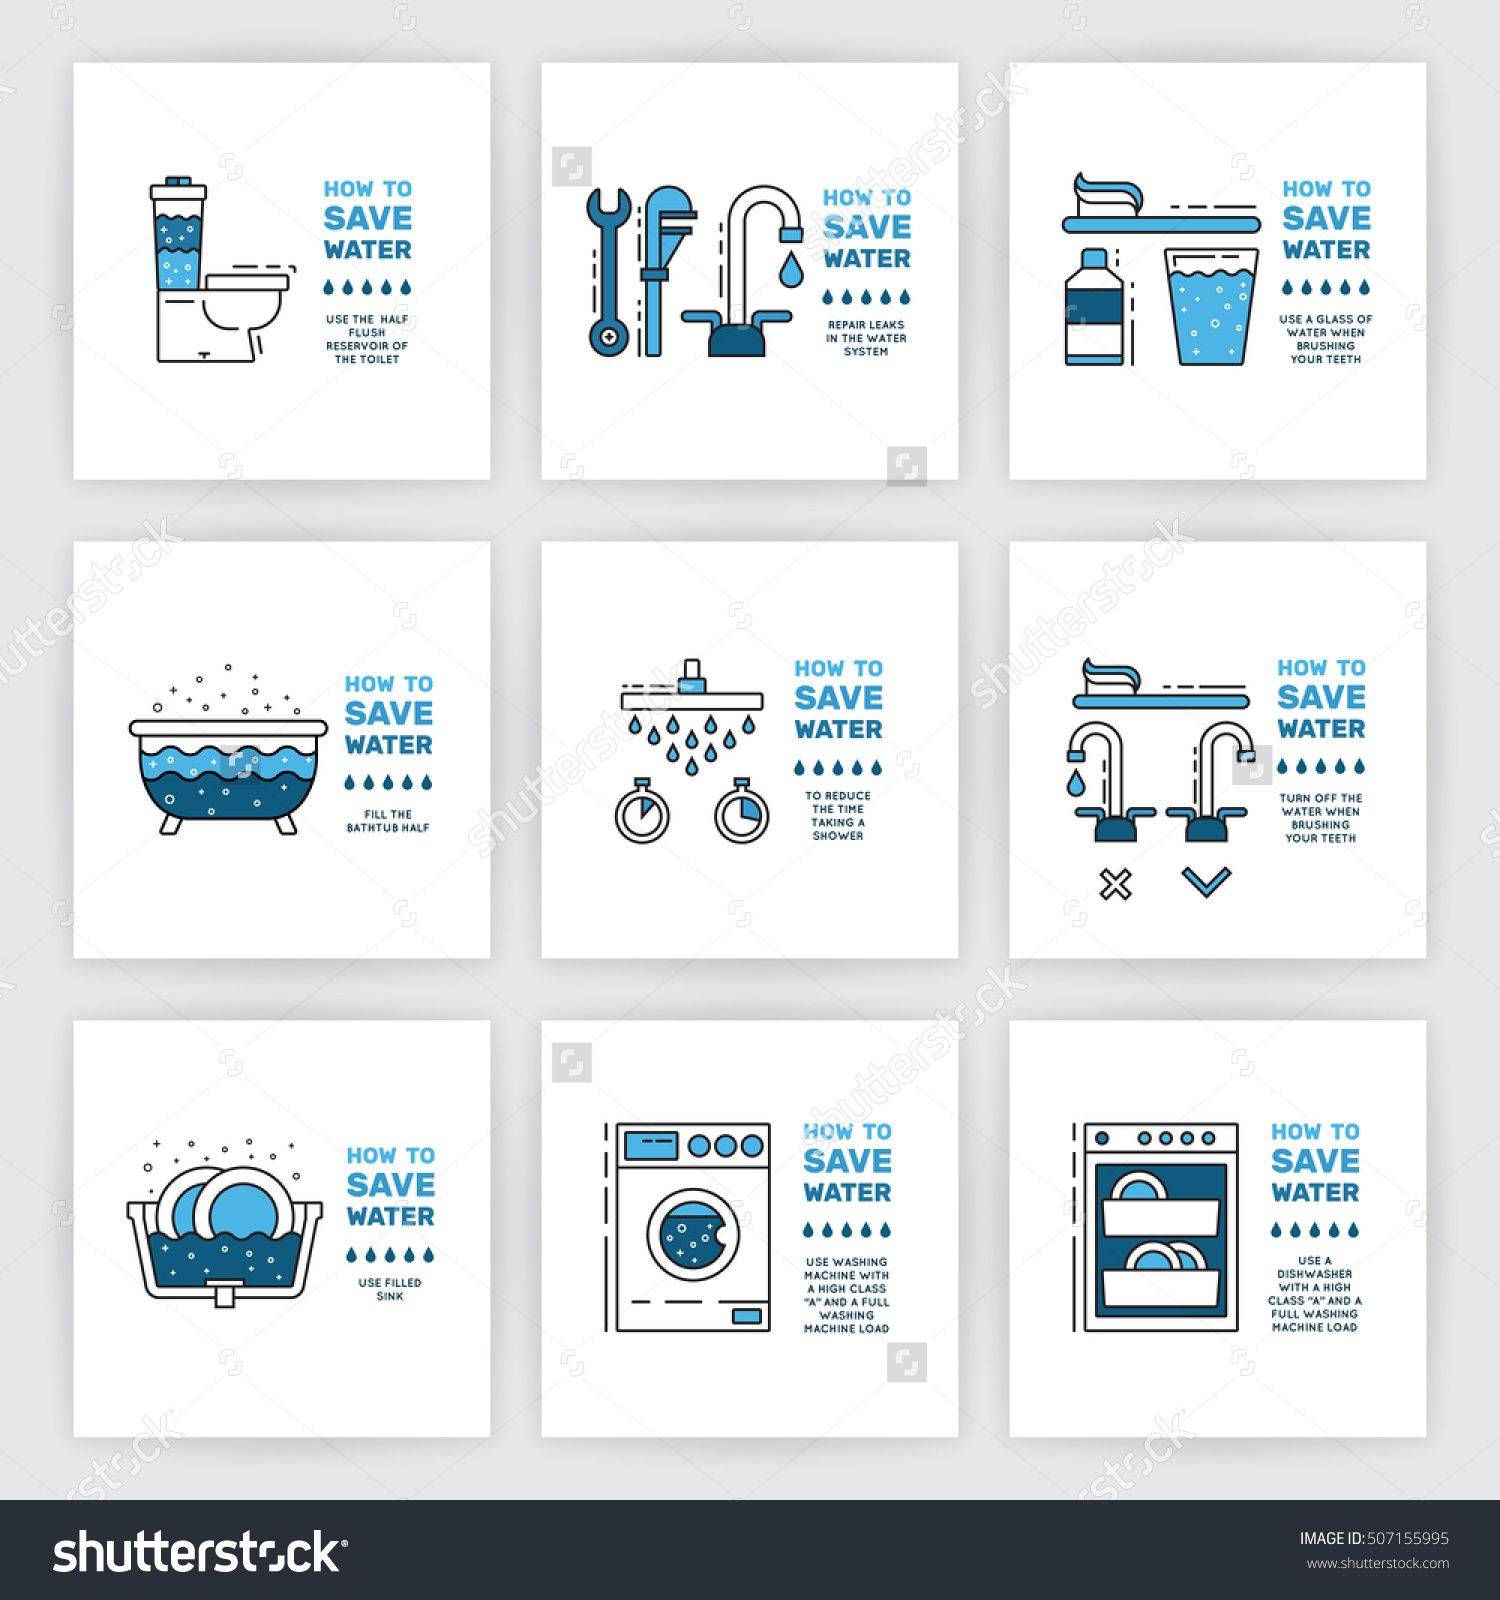 Illustration With Tips On Saving Water Consumption By Man In A